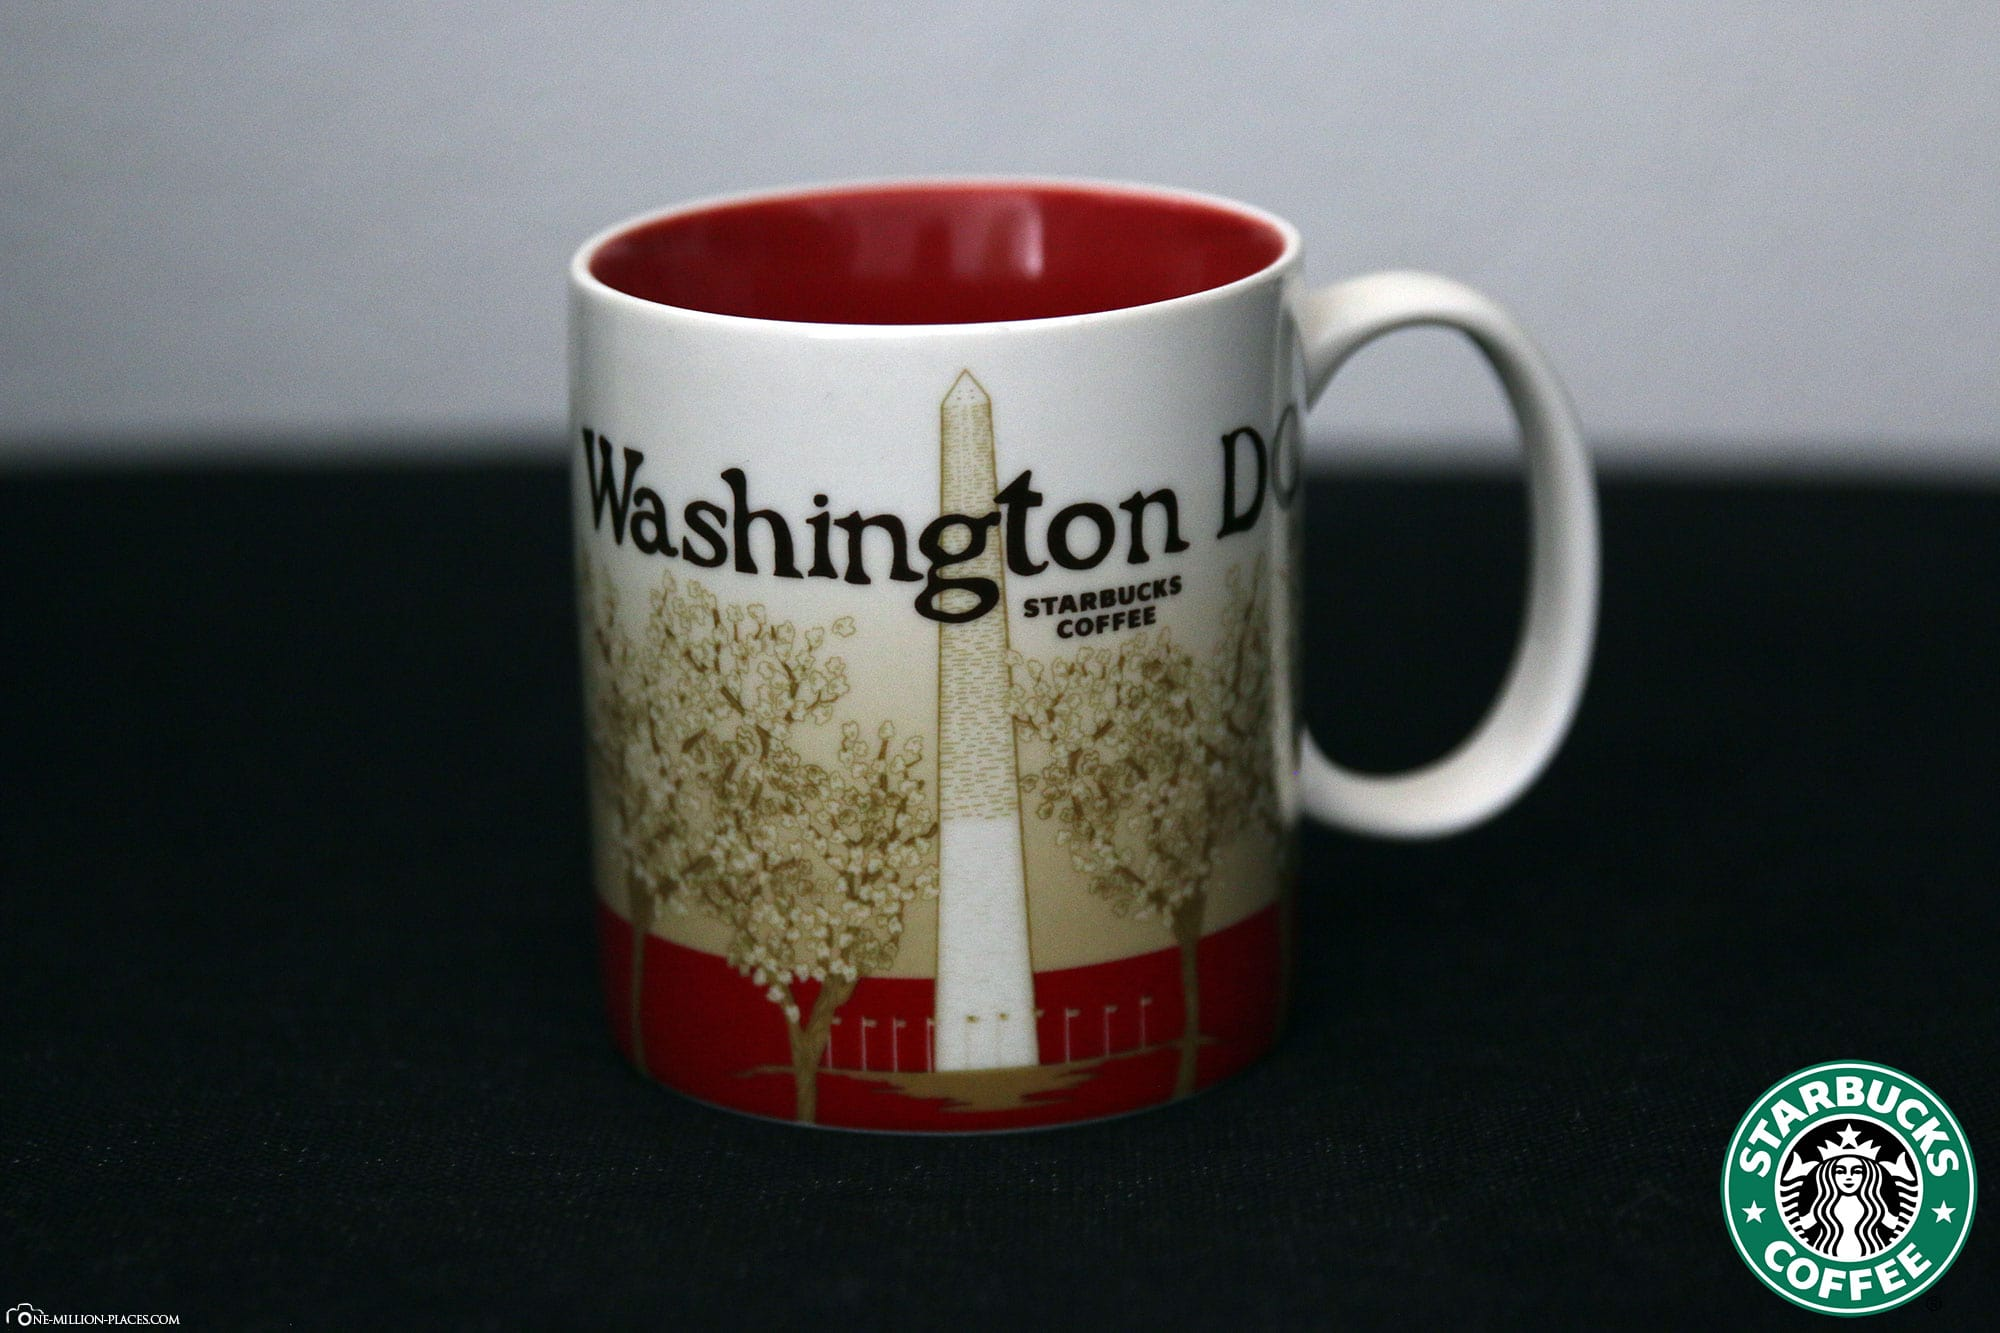 Washington DC, Starbucks Tasse, Global Icon Serie, City Mugs, Sammlung, USA, Reisebericht